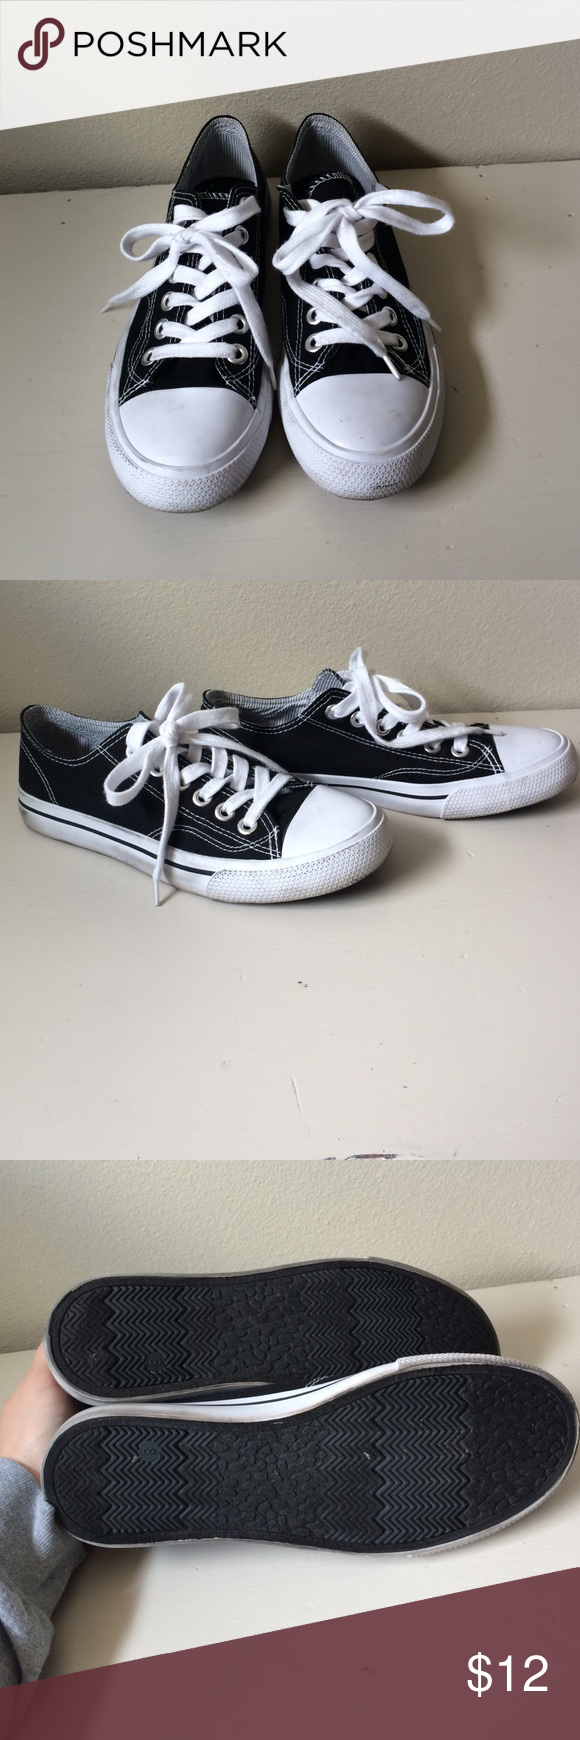 efd34ab030e Converse look alike These are the target brand look alike converse shoes. Womens  size 8. Worn only a couple of times. Excellent condition Mossimo Supply Co  ...